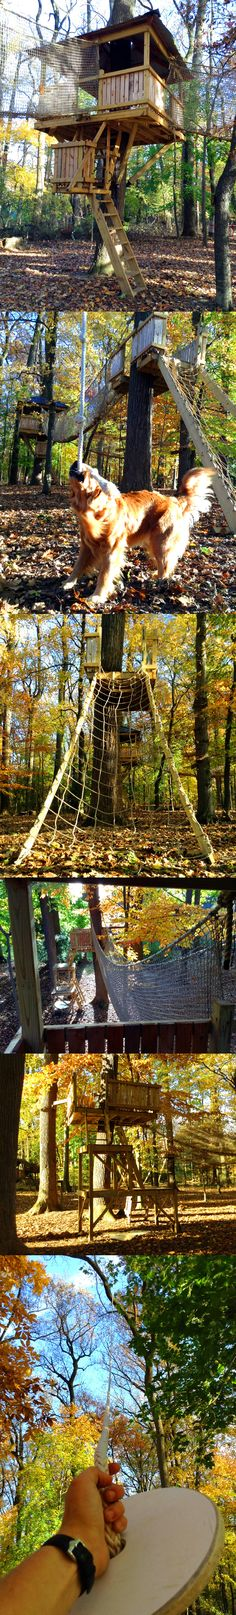 Who wants a 3 platform, two bridge, two rope swing and two zip-line treehouse?  If you were one of the very fortunate kids in Berwyn, PA, that's exactly what you got!  This project was built to replace a Super Z Zip-Line and boy, was it ever worth it.  With two zip-lines, one being over 200', many ways in and out, and a 13' launch platform for both the zip-line and rope swing, it all really comes down to an excellent way to get the kids out of your hair for a while.